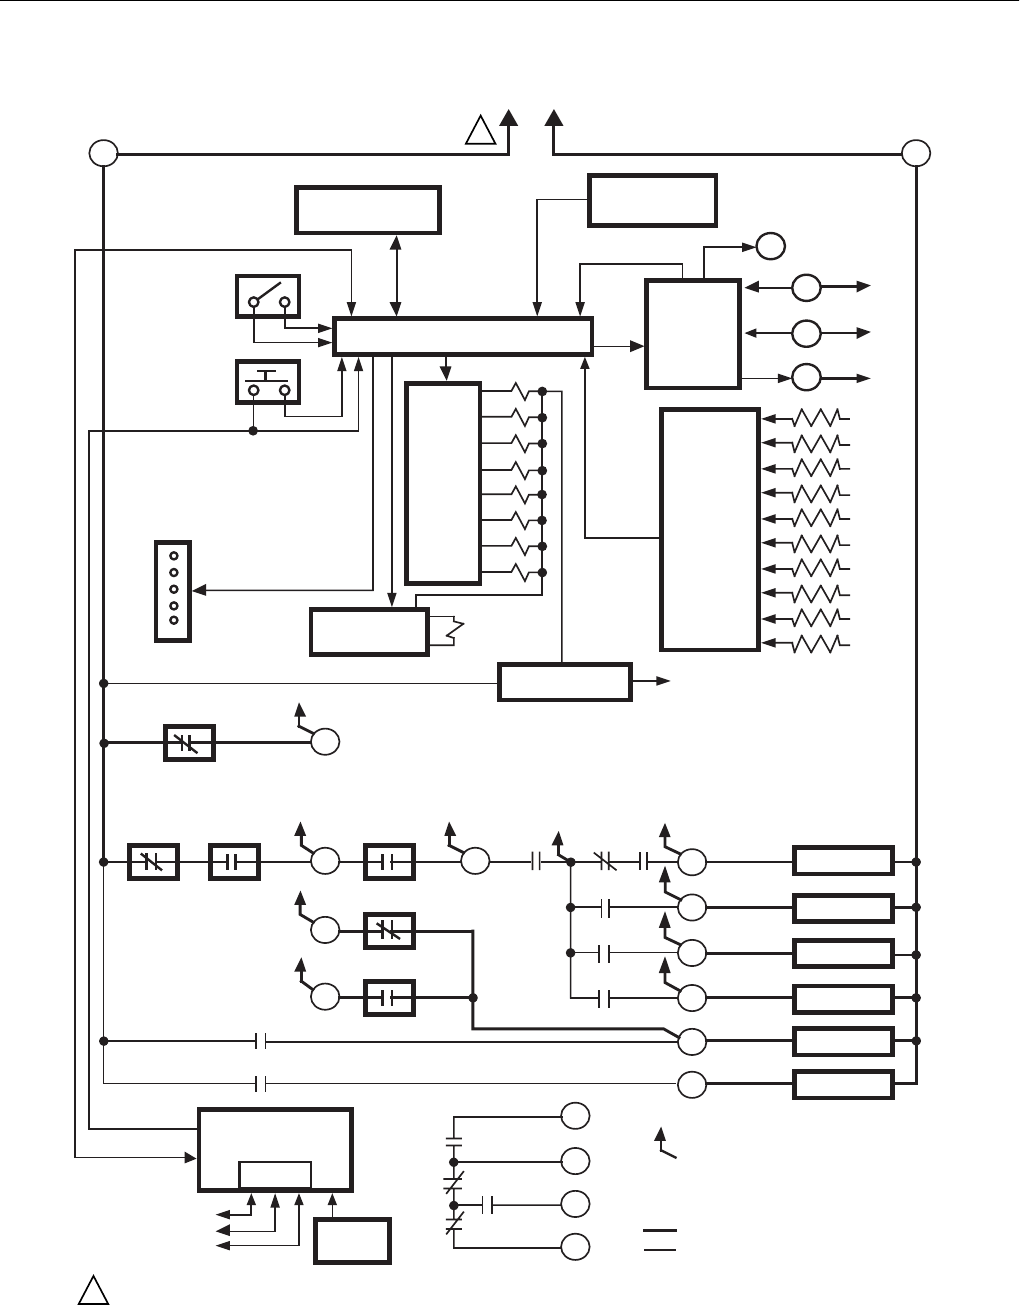 punch down block wiring diagram with Detailed Wiring Diagram Of A 66 Block on Telephone 66 Block Wiring Diagram as well work Cat6 Wiring Diagram moreover Work Wiring Closet Diagram moreover Hand Crank Phone Wiring Diagram also Wiring Diagram Also Phone Cable Junction Box Along.